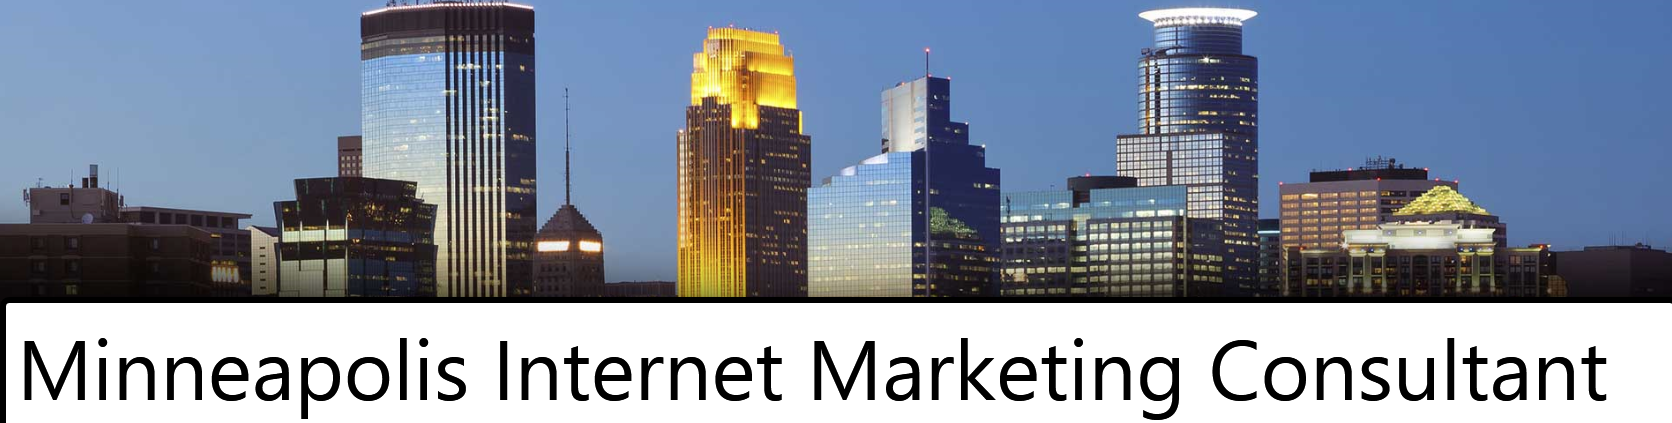 Minneapolis Internet Marketing Consultant